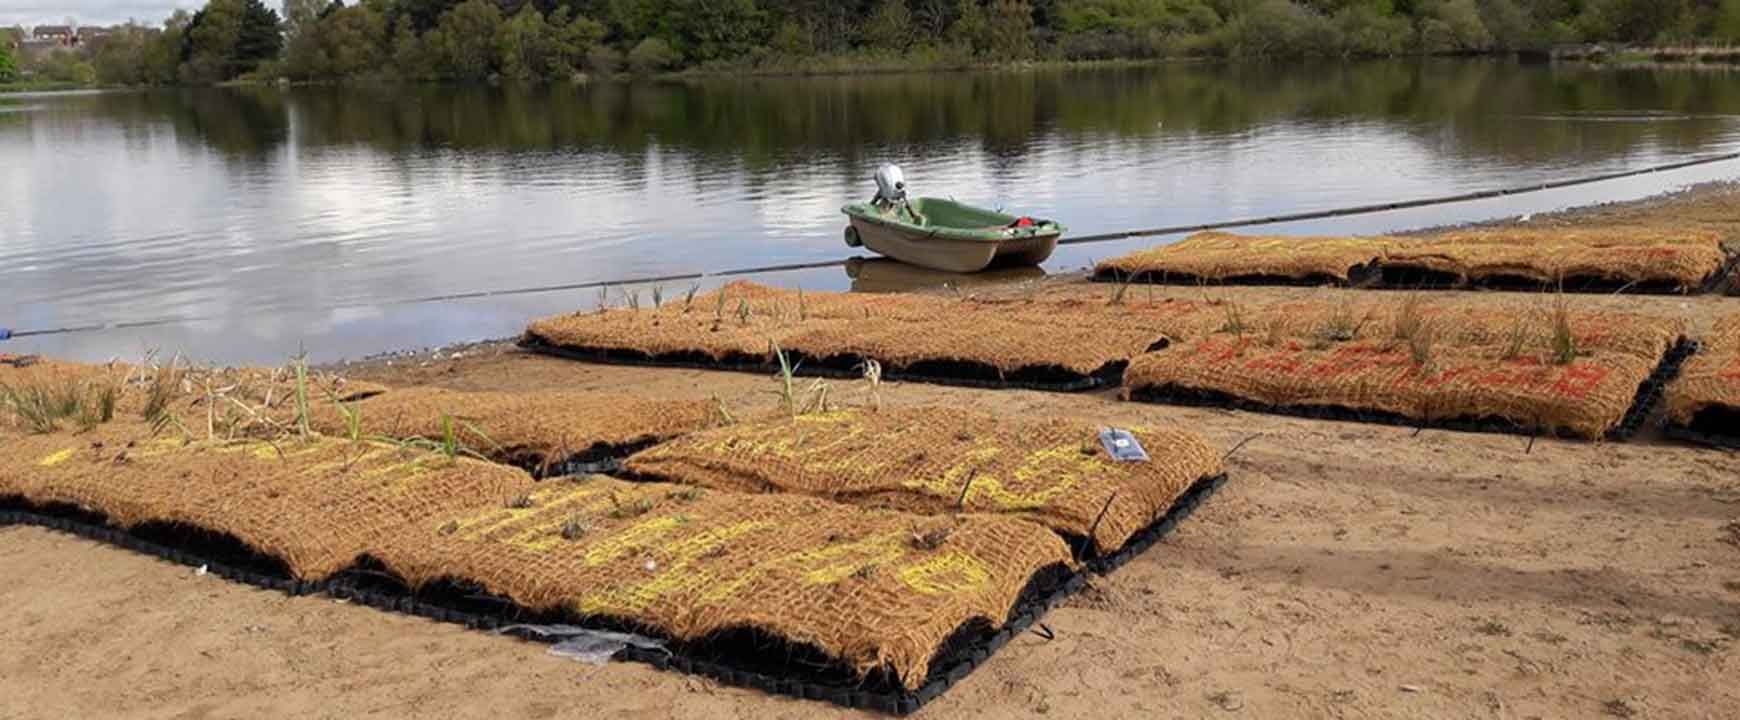 BioHaven modules being prepared for launch at Hogganfield Loch, Glasgow